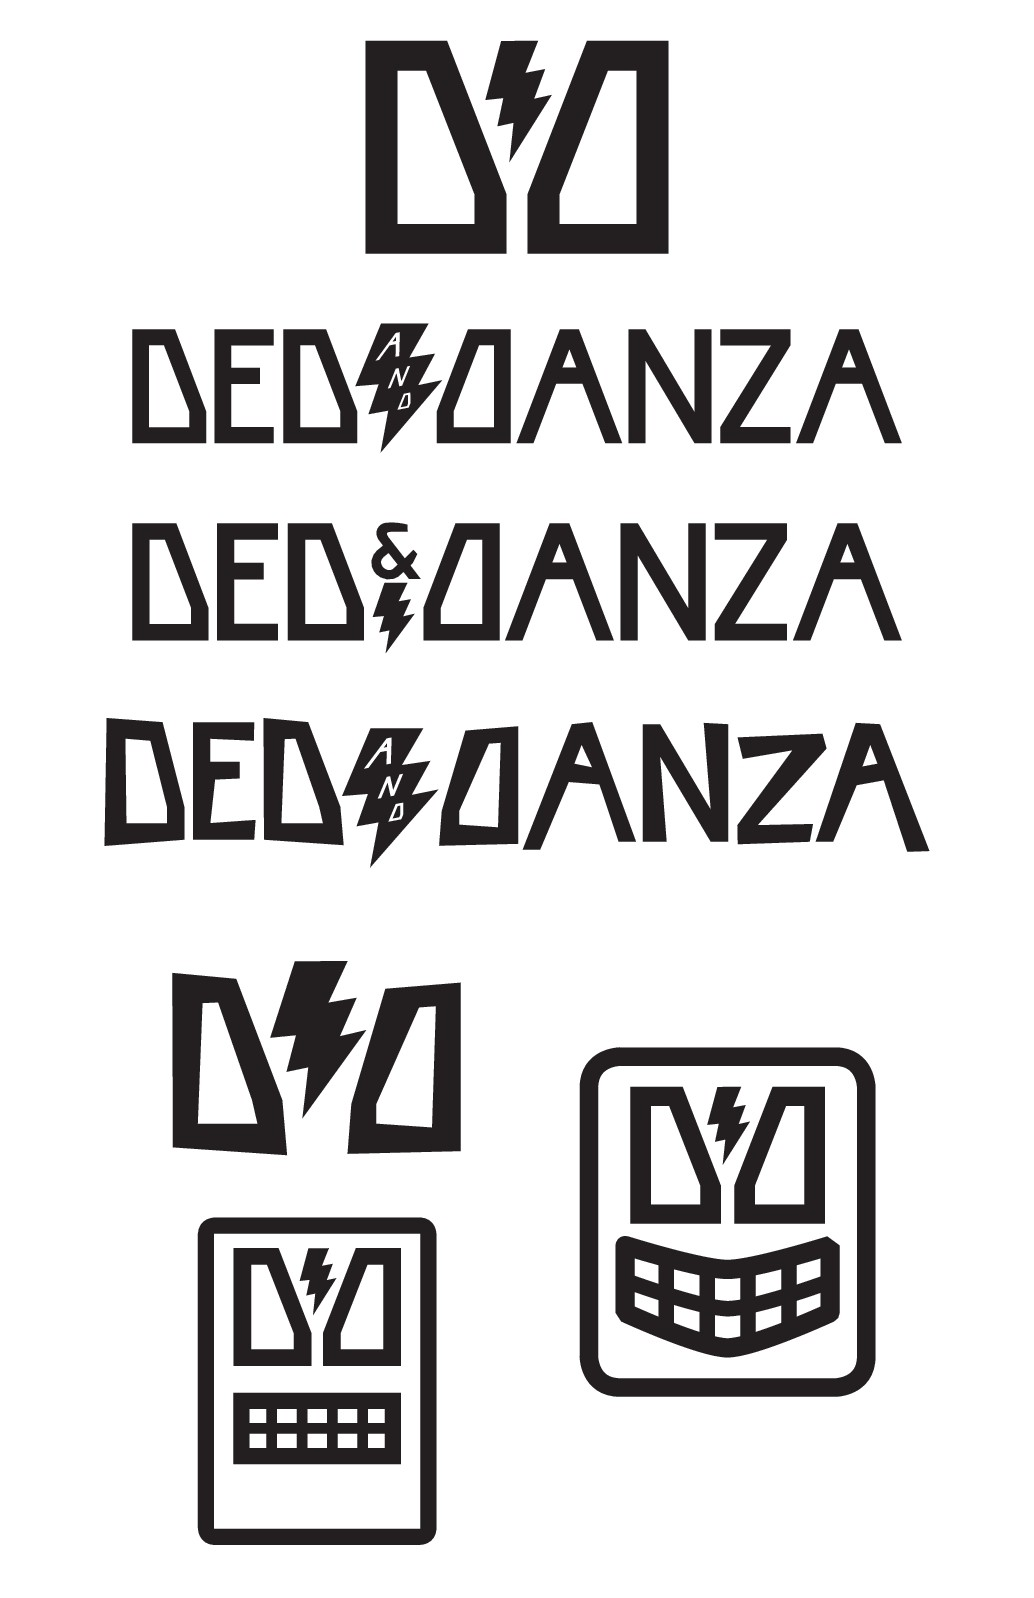 Design a simple, bold logo for a two-piece rock'n'roll band